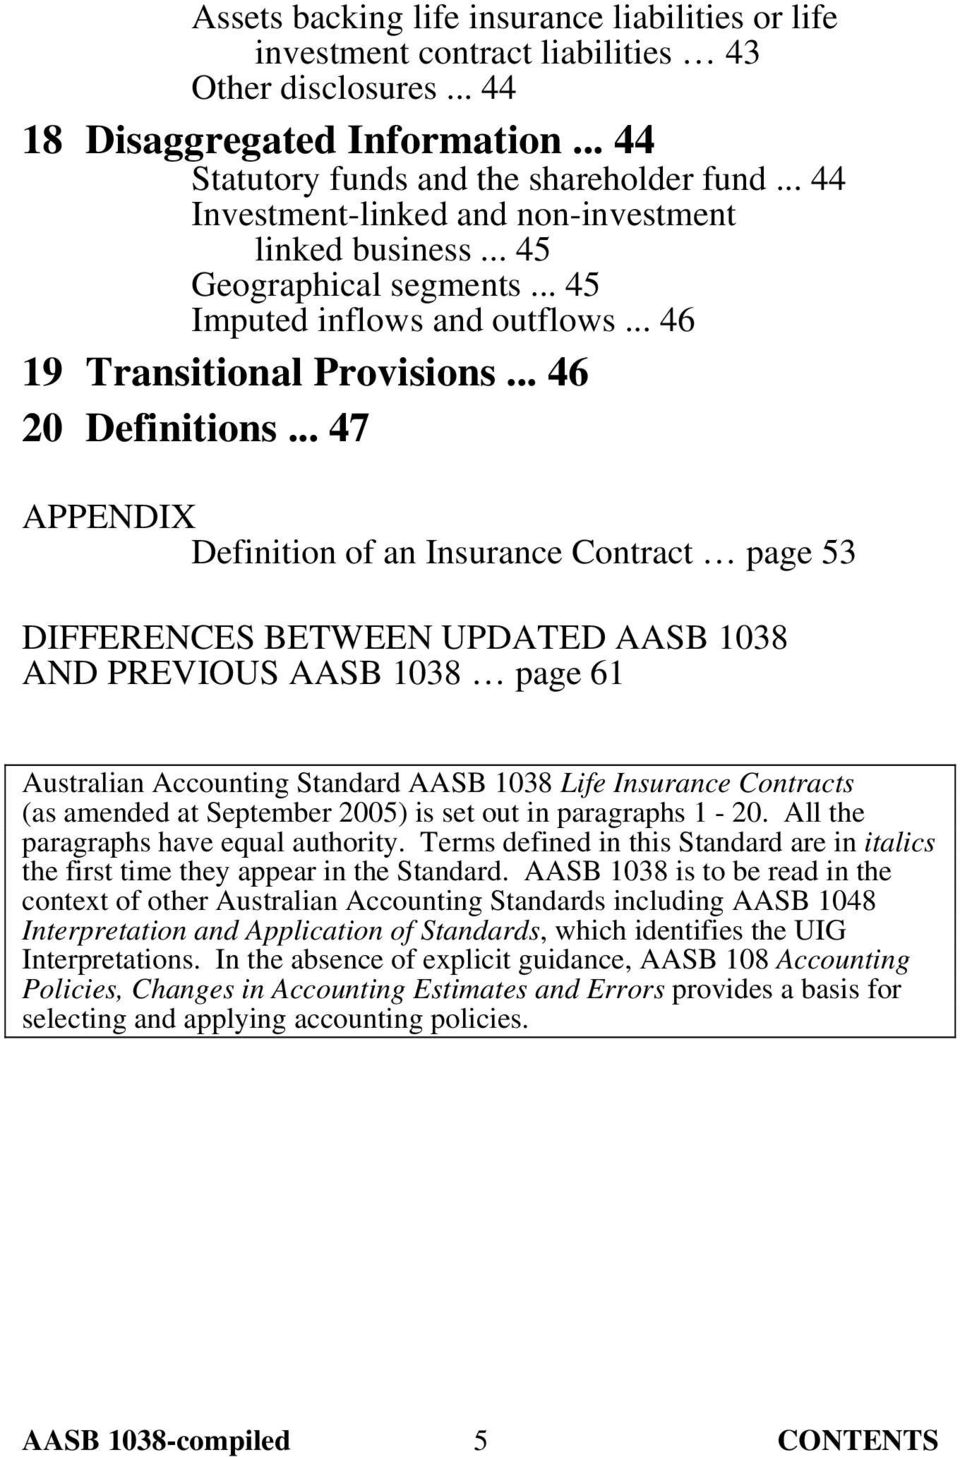 .. 47 APPENDIX Definition of an Insurance Contract page 53 DIFFERENCES BETWEEN UPDATED AASB 1038 AND PREVIOUS AASB 1038 page 61 Australian Accounting Standard AASB 1038 Life Insurance Contracts (as